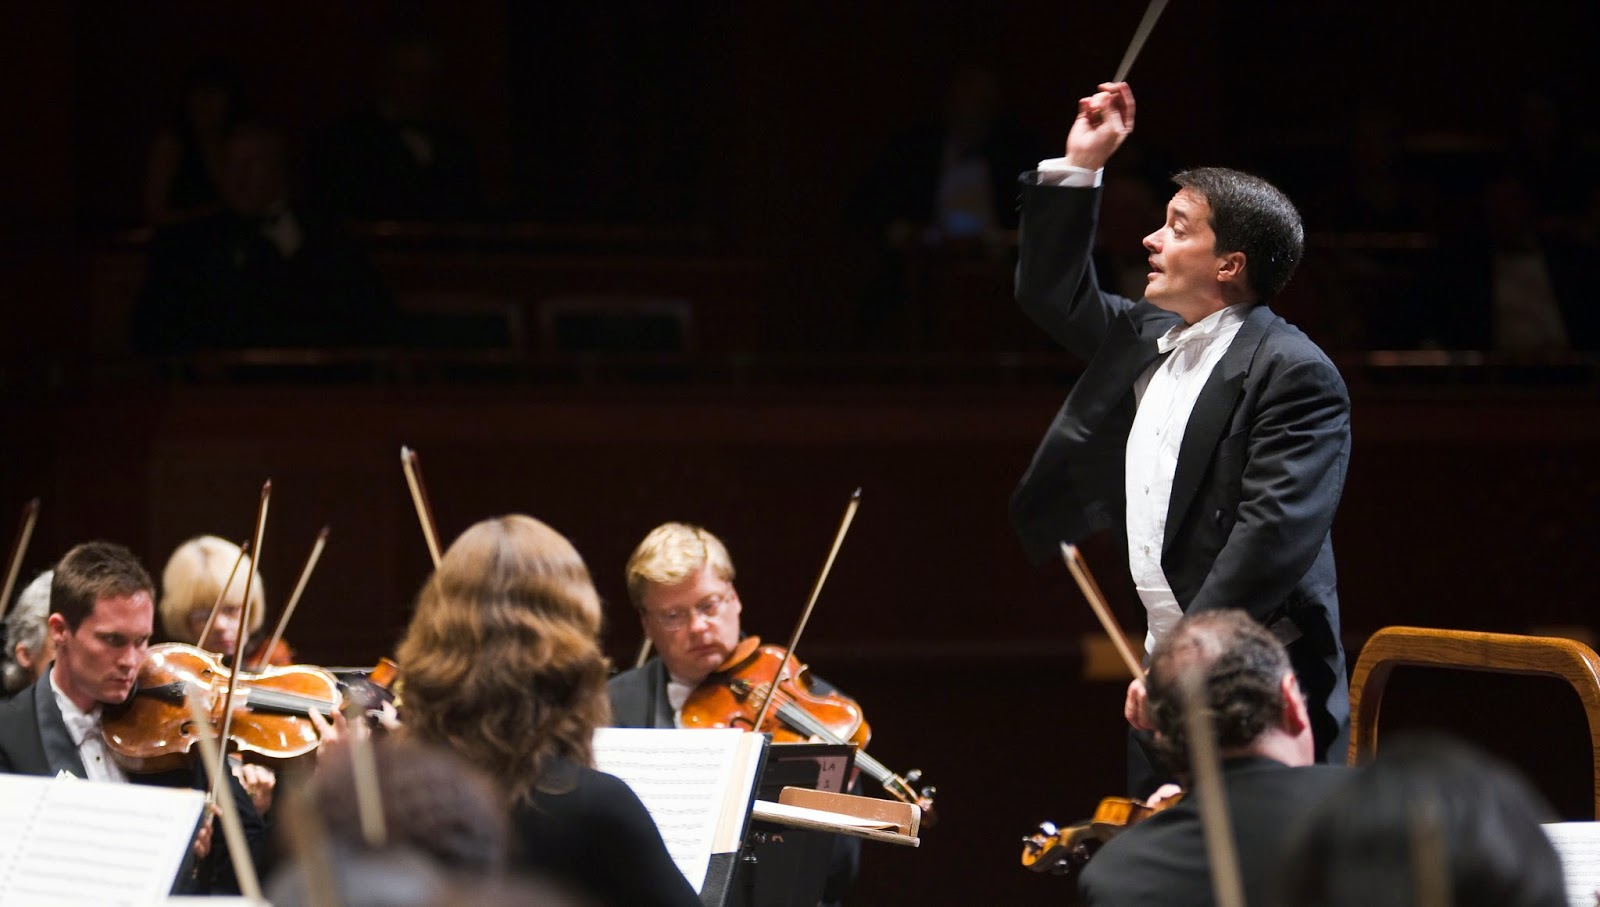 Superconductor Classical And Opera Concert Review The Belgian Dip